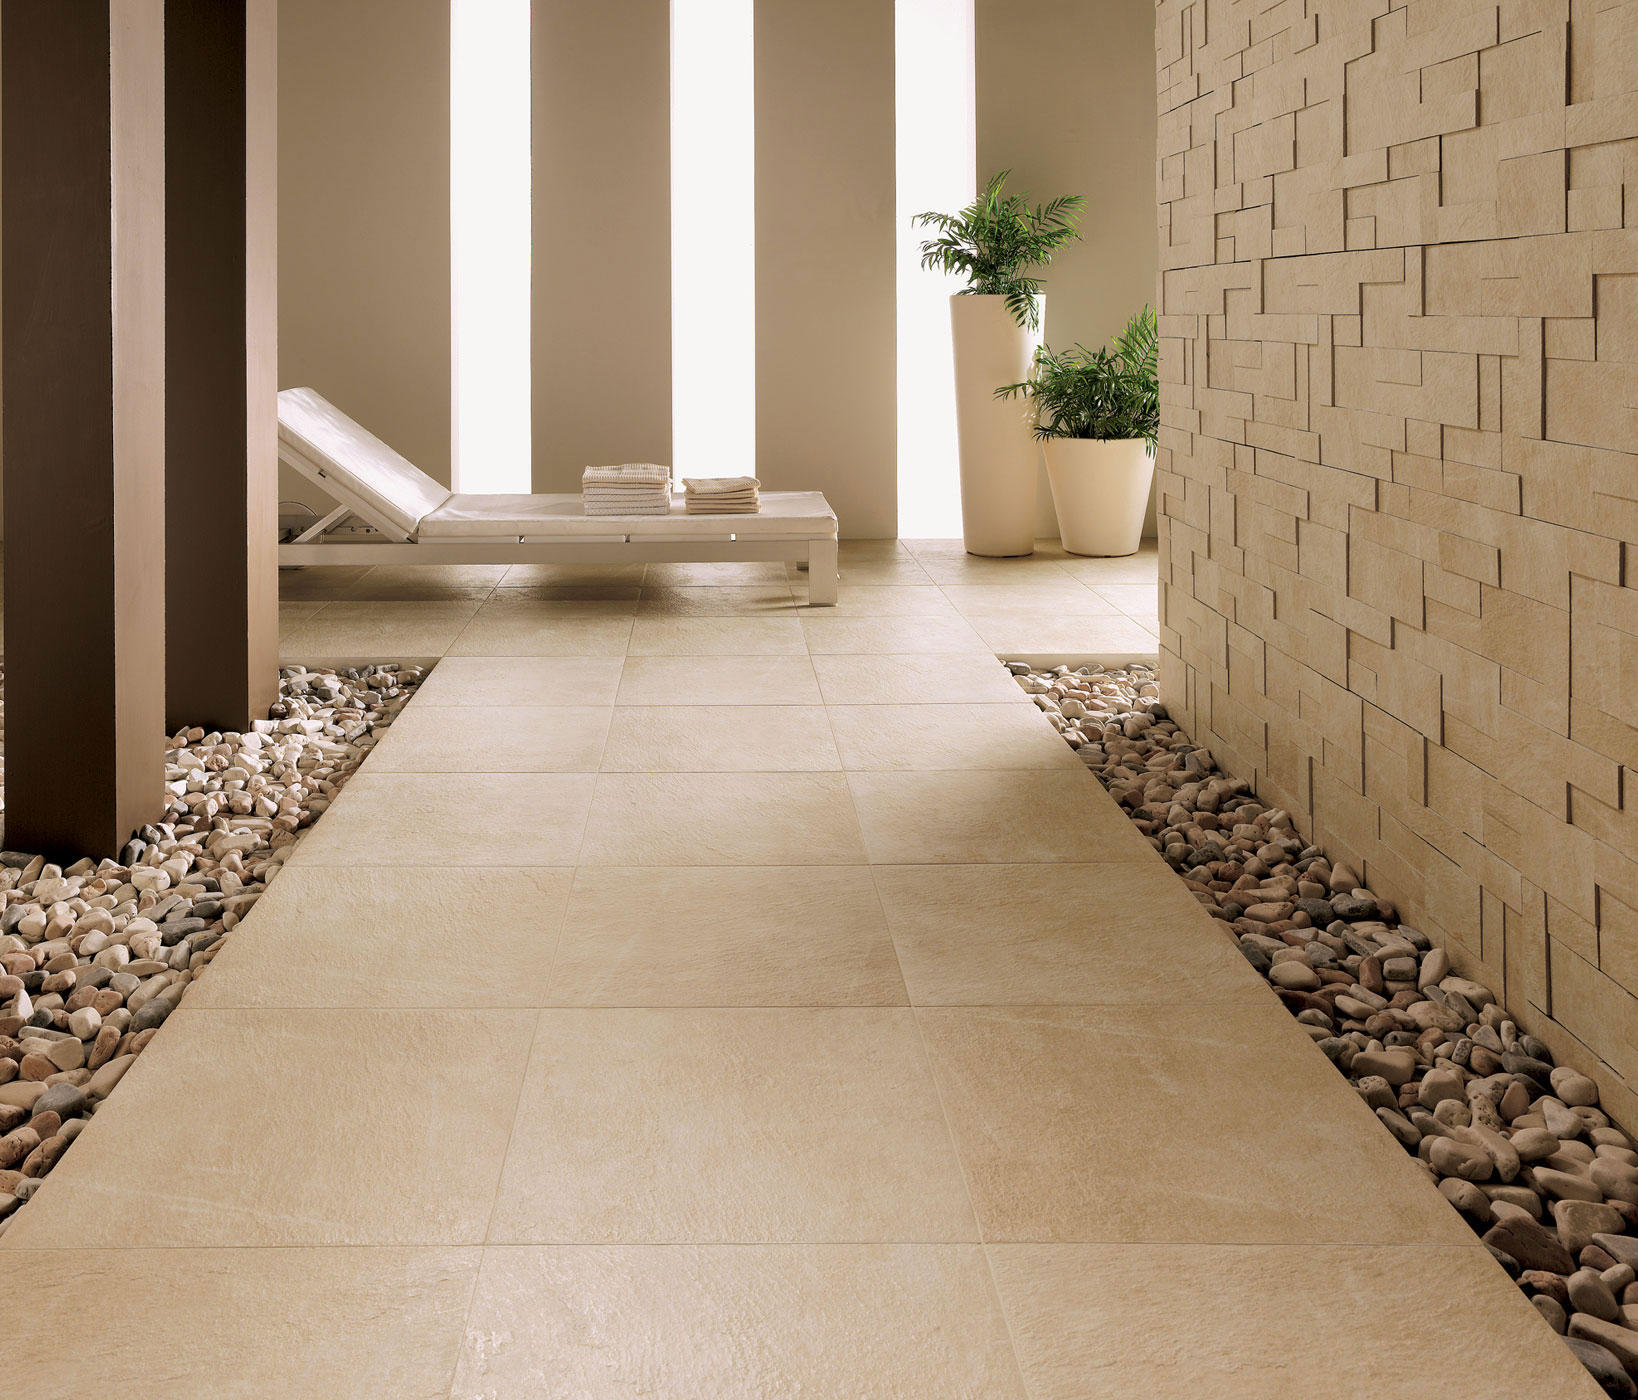 ... Arketipo Beige Floor Tile By Refin ...